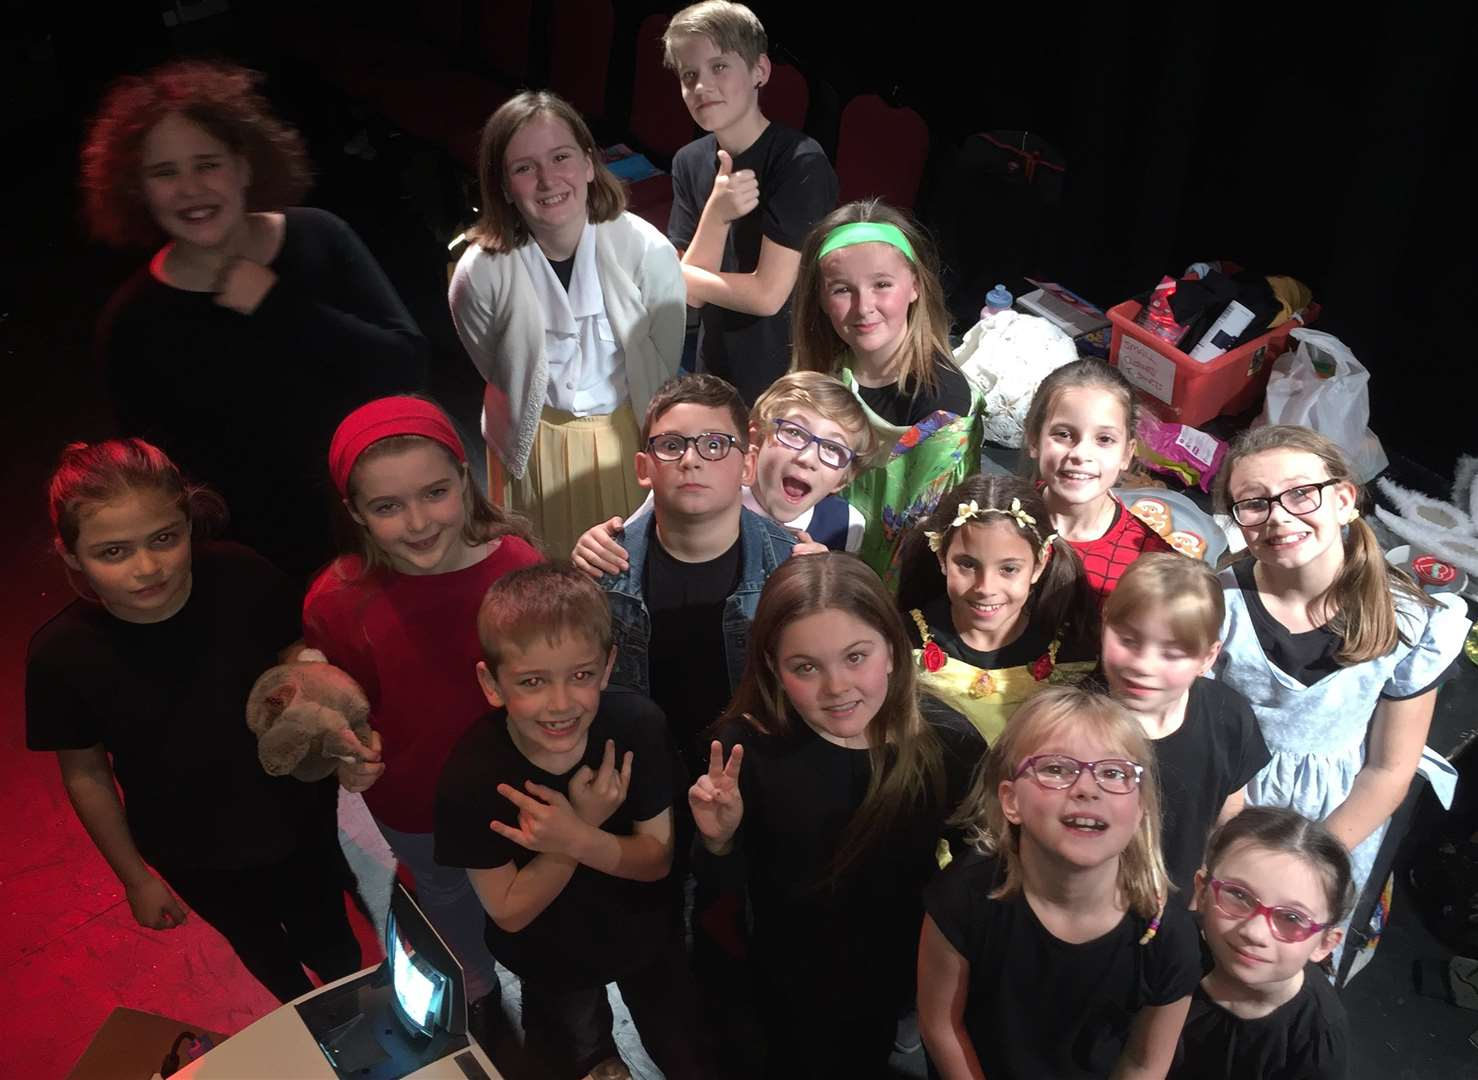 Act II Theatre Company's Pint-Sized Players make up the cast of The Suitcase Kid, a stage adaptation of the book by Jacqueline Wilson. Photo supplied by Jacqueline Wilson. (5475460)